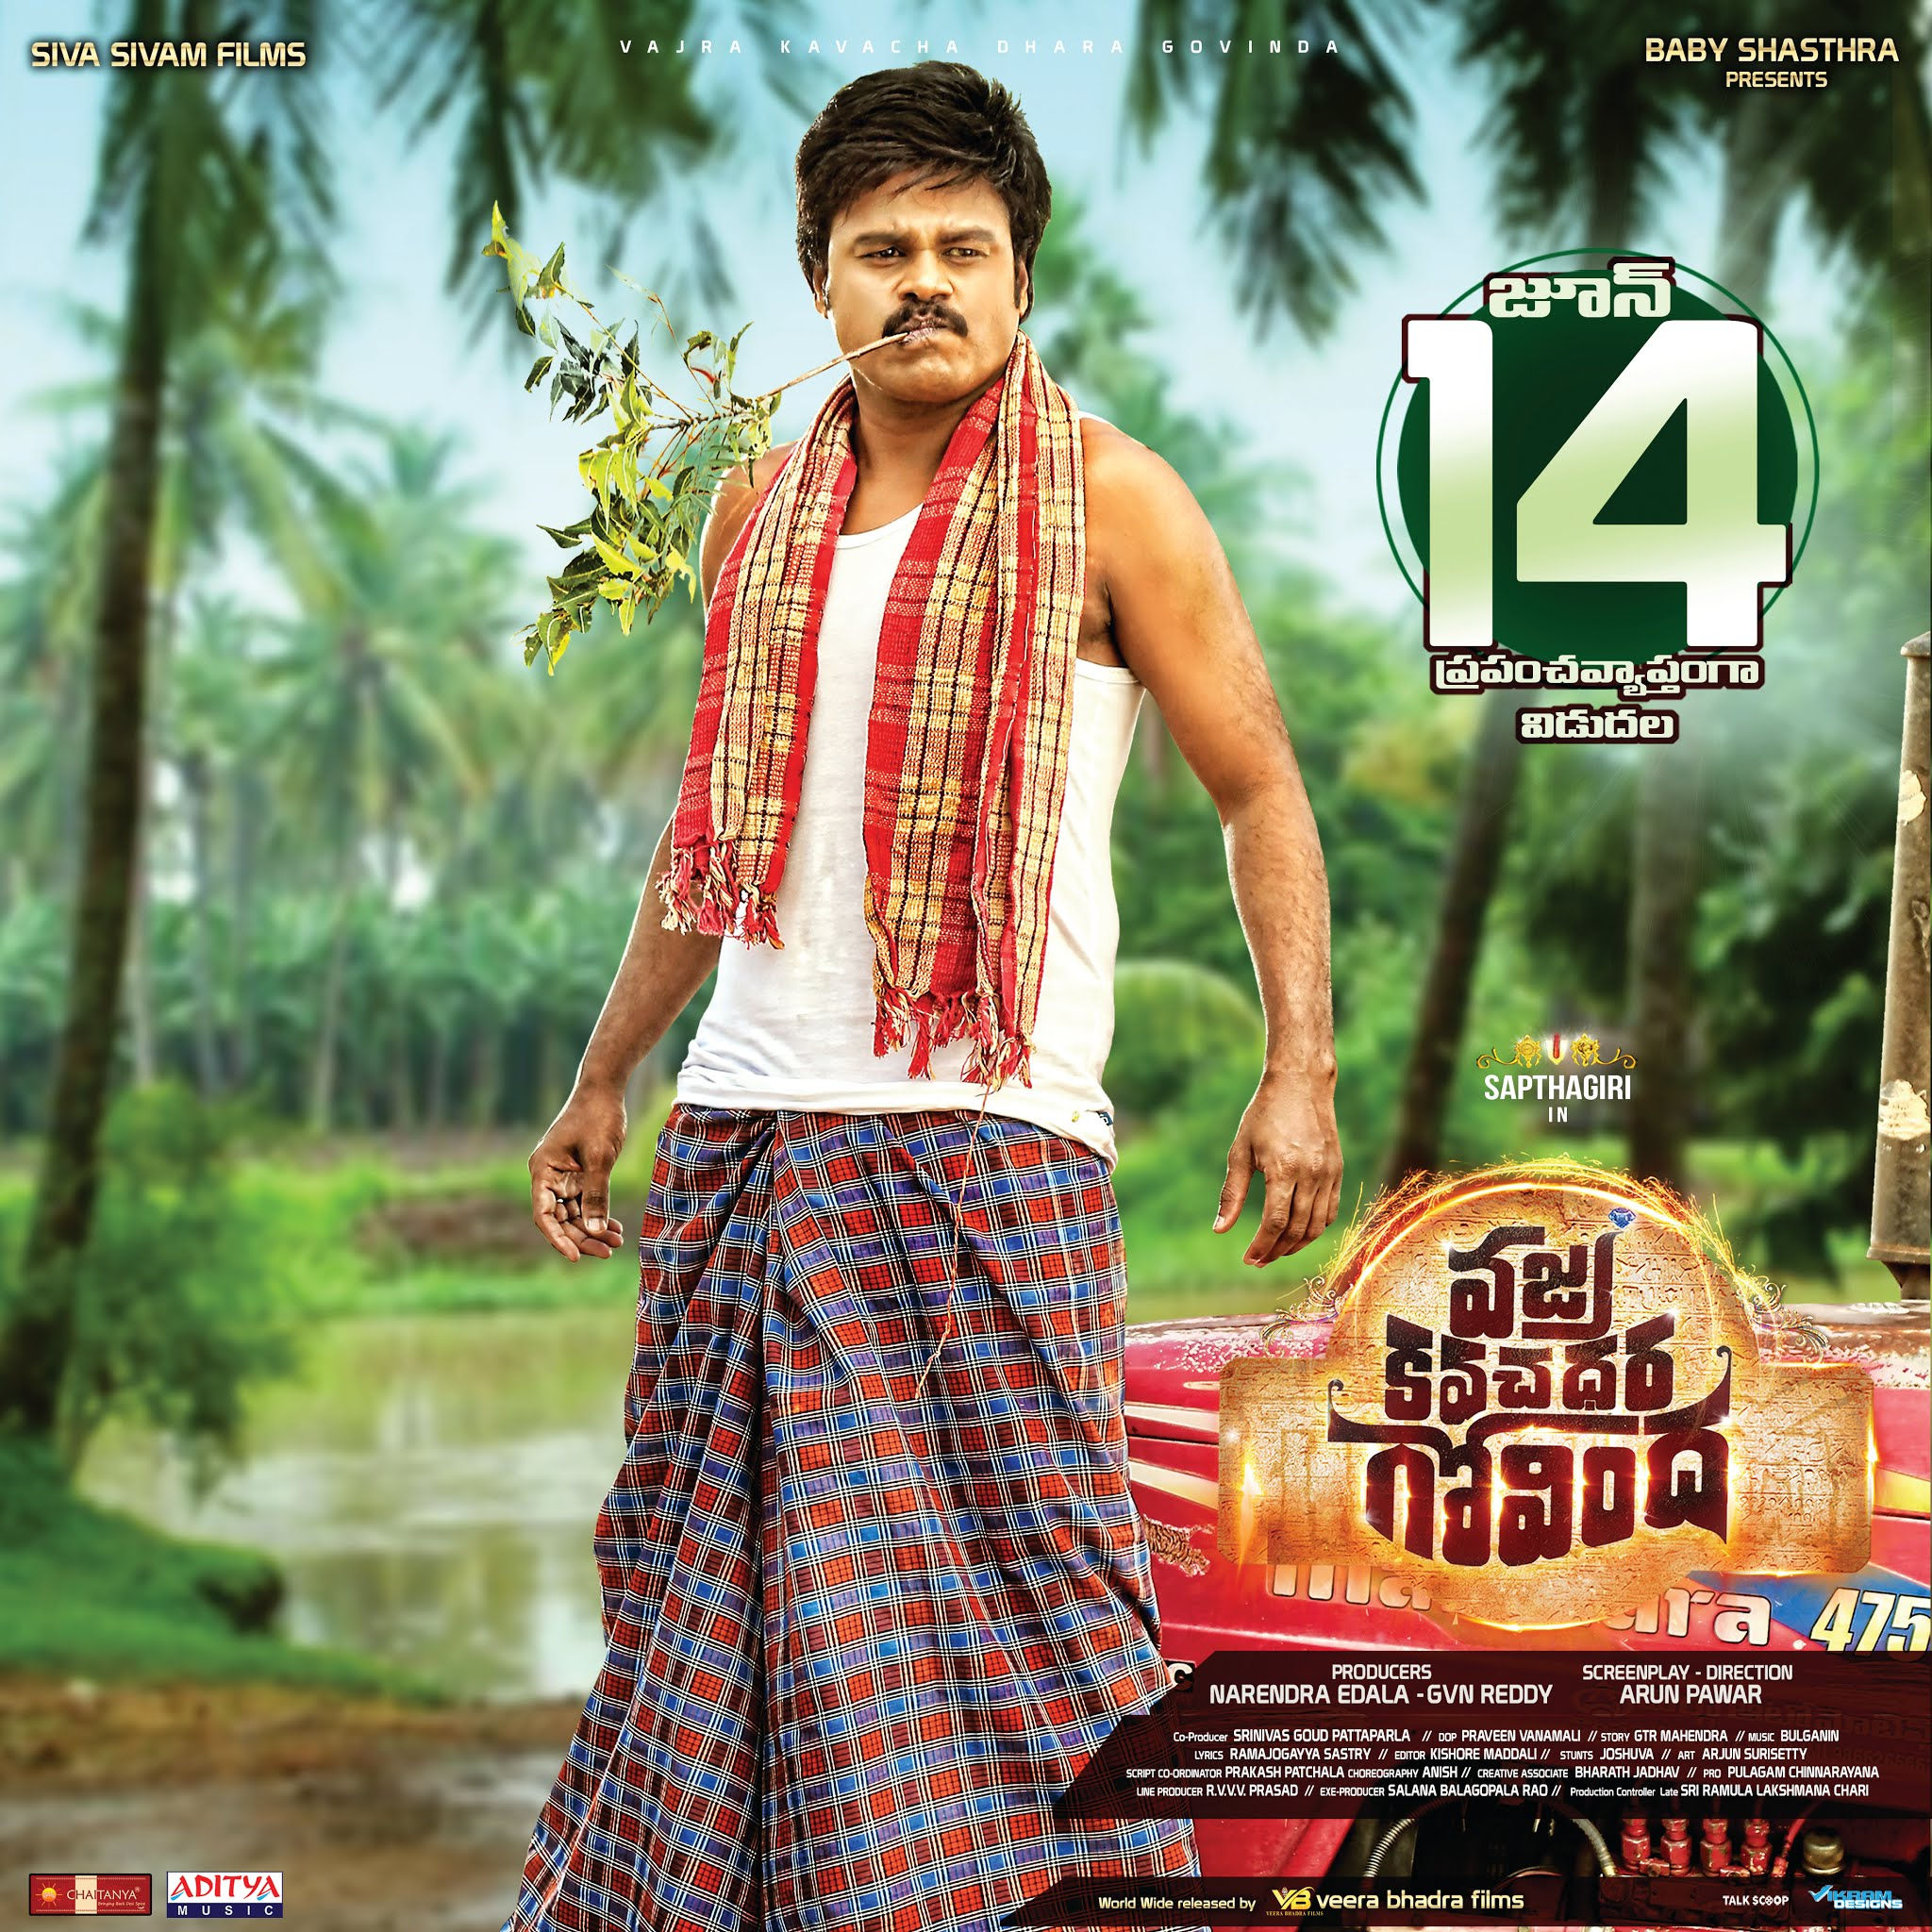 Saptagiri Vajra Kavachadhara Govinda movie release on June 14th